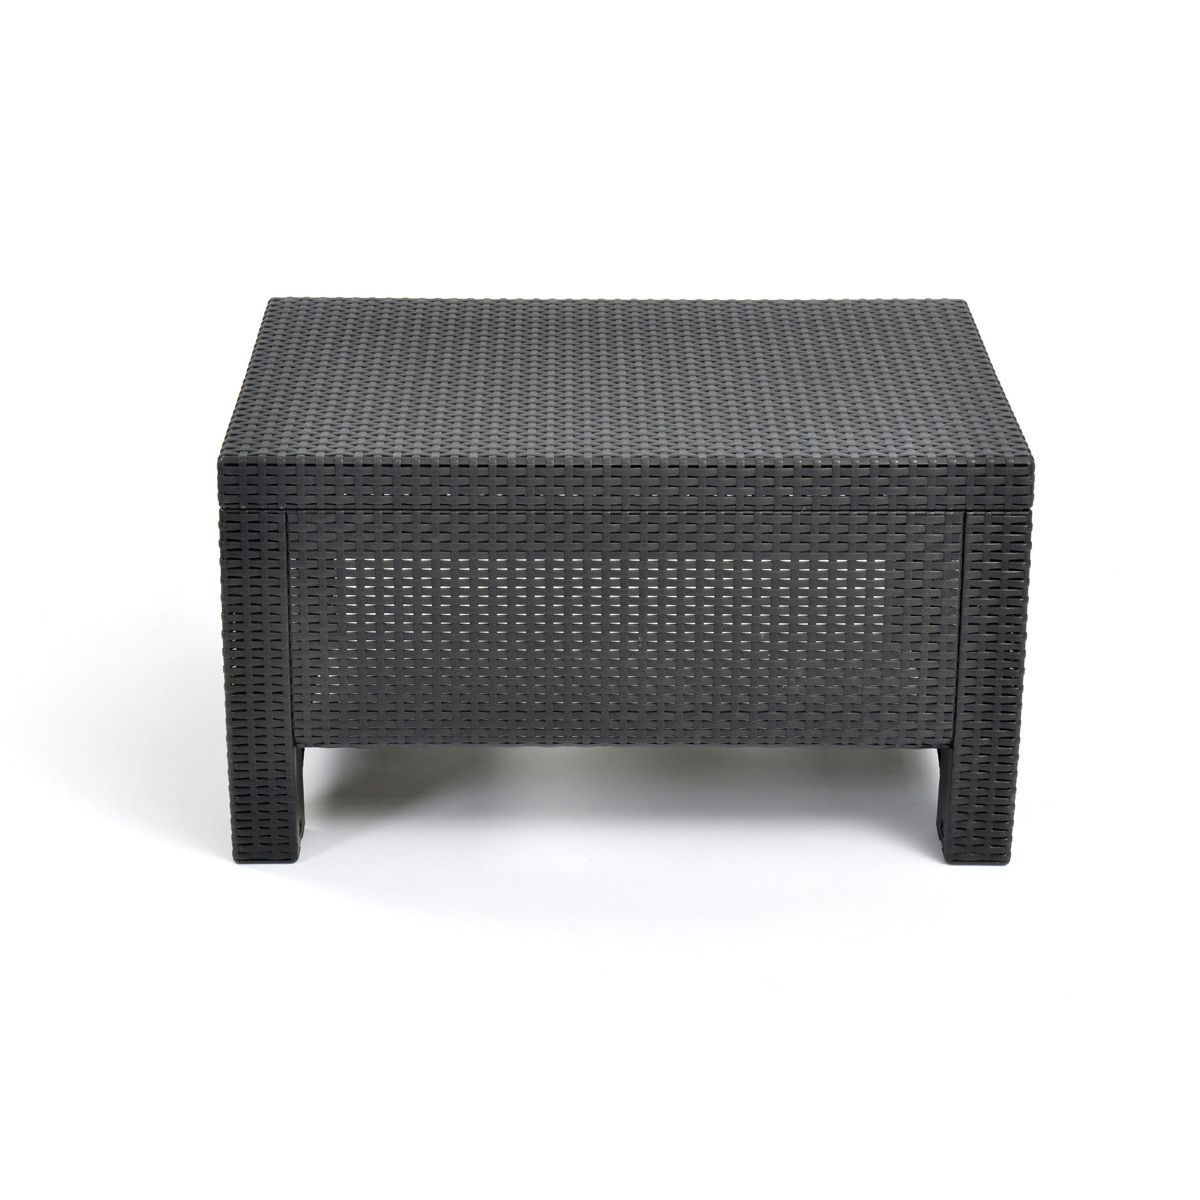 Keter corfu charcoal resin wicker all weather outdoor coffee table keter corfu charcoal resin wicker all weather outdoor coffee table grey brown patio furniture geotapseo Image collections